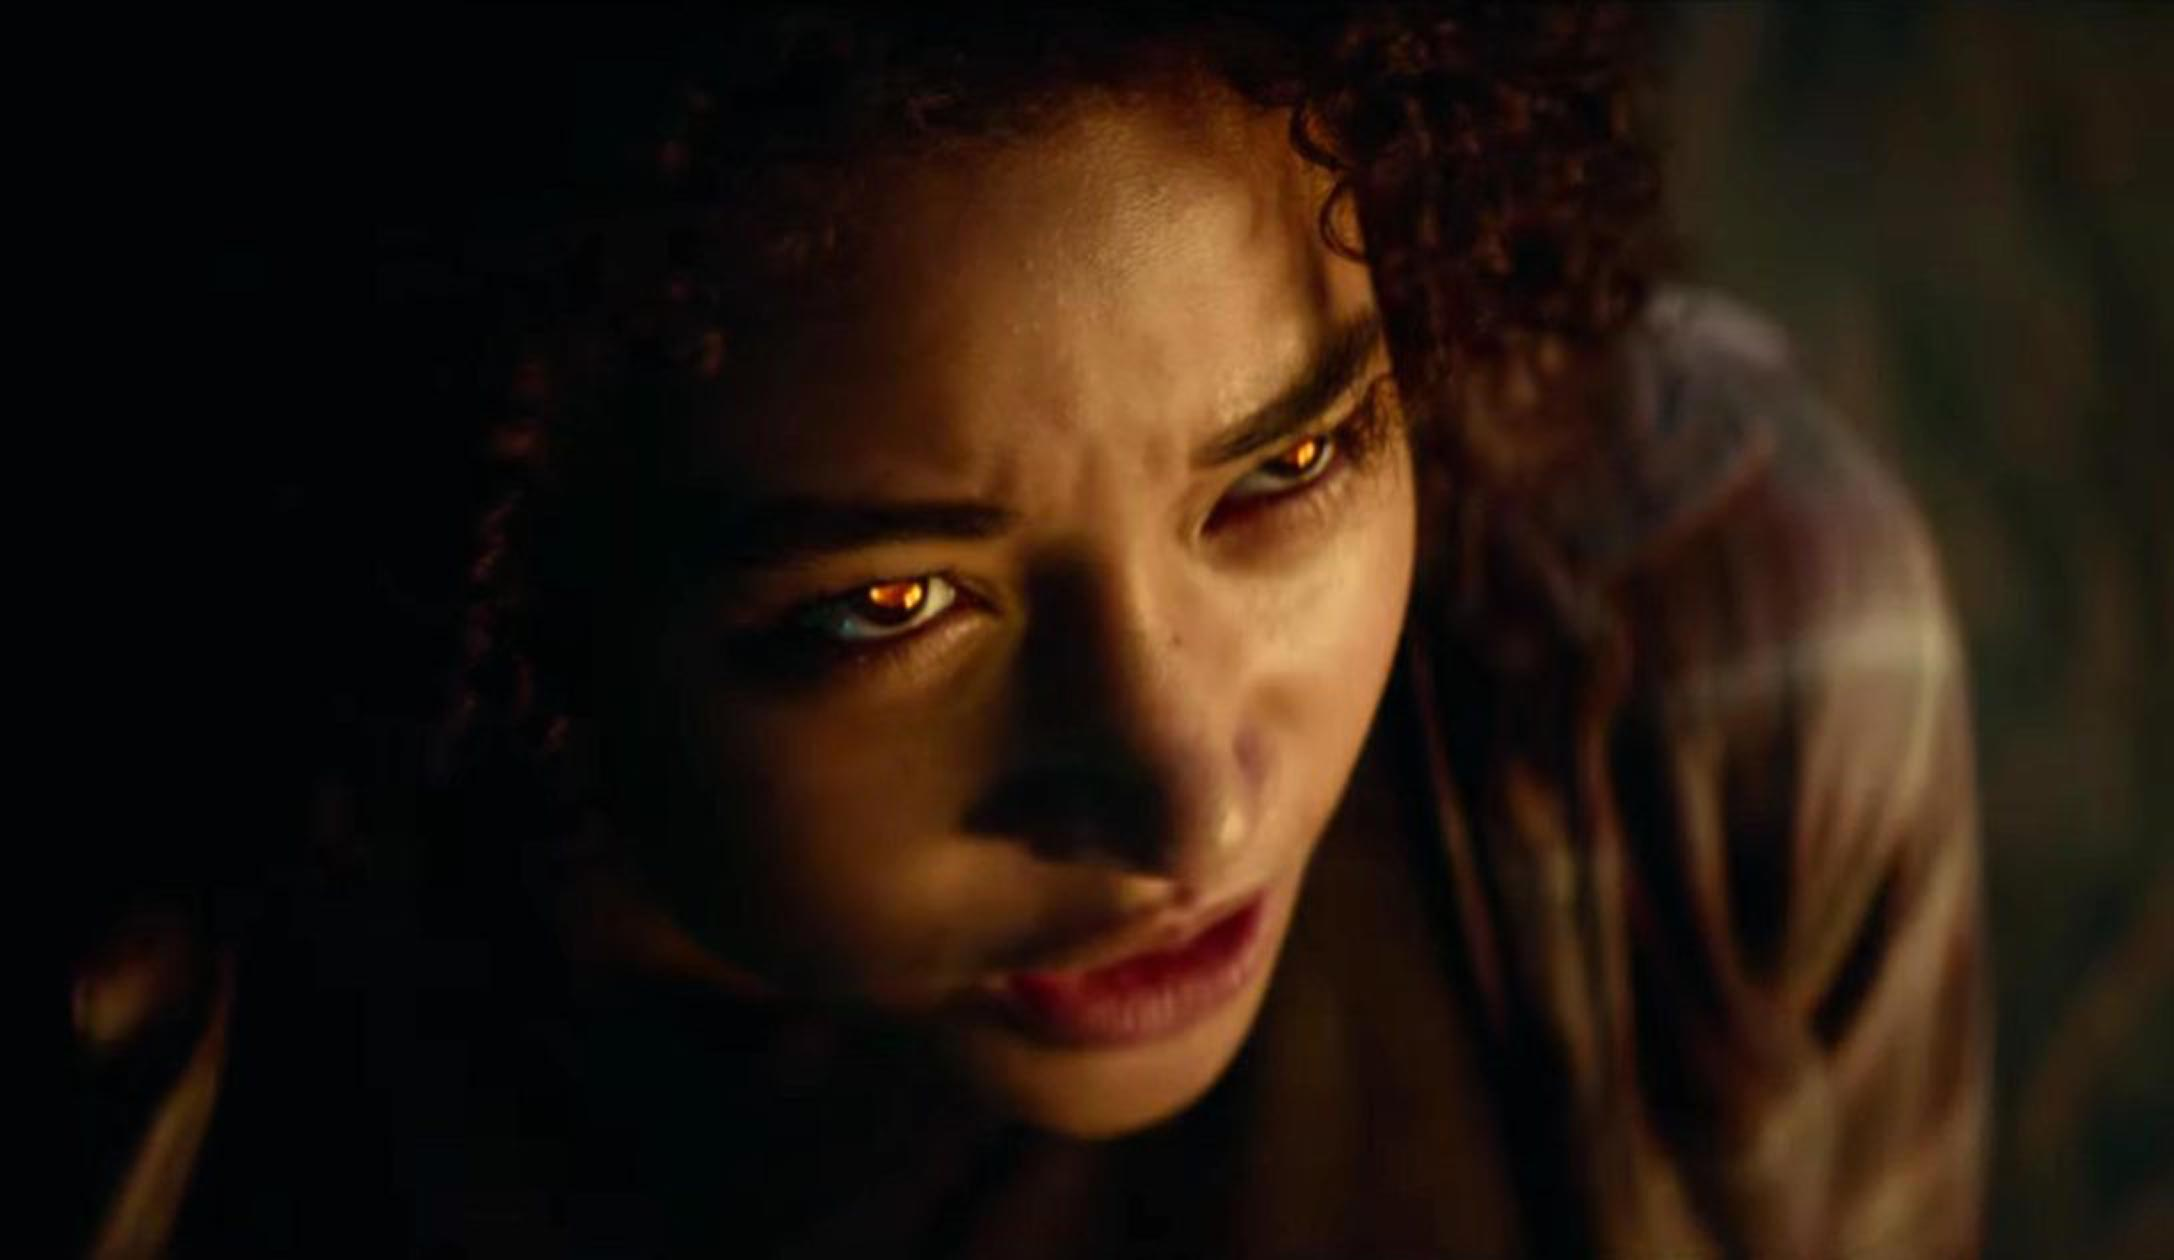 Sci-Fi Thriller 'The Darkest Minds' First Trailer Mashes 'The Hunger Games' And 'X-Men'